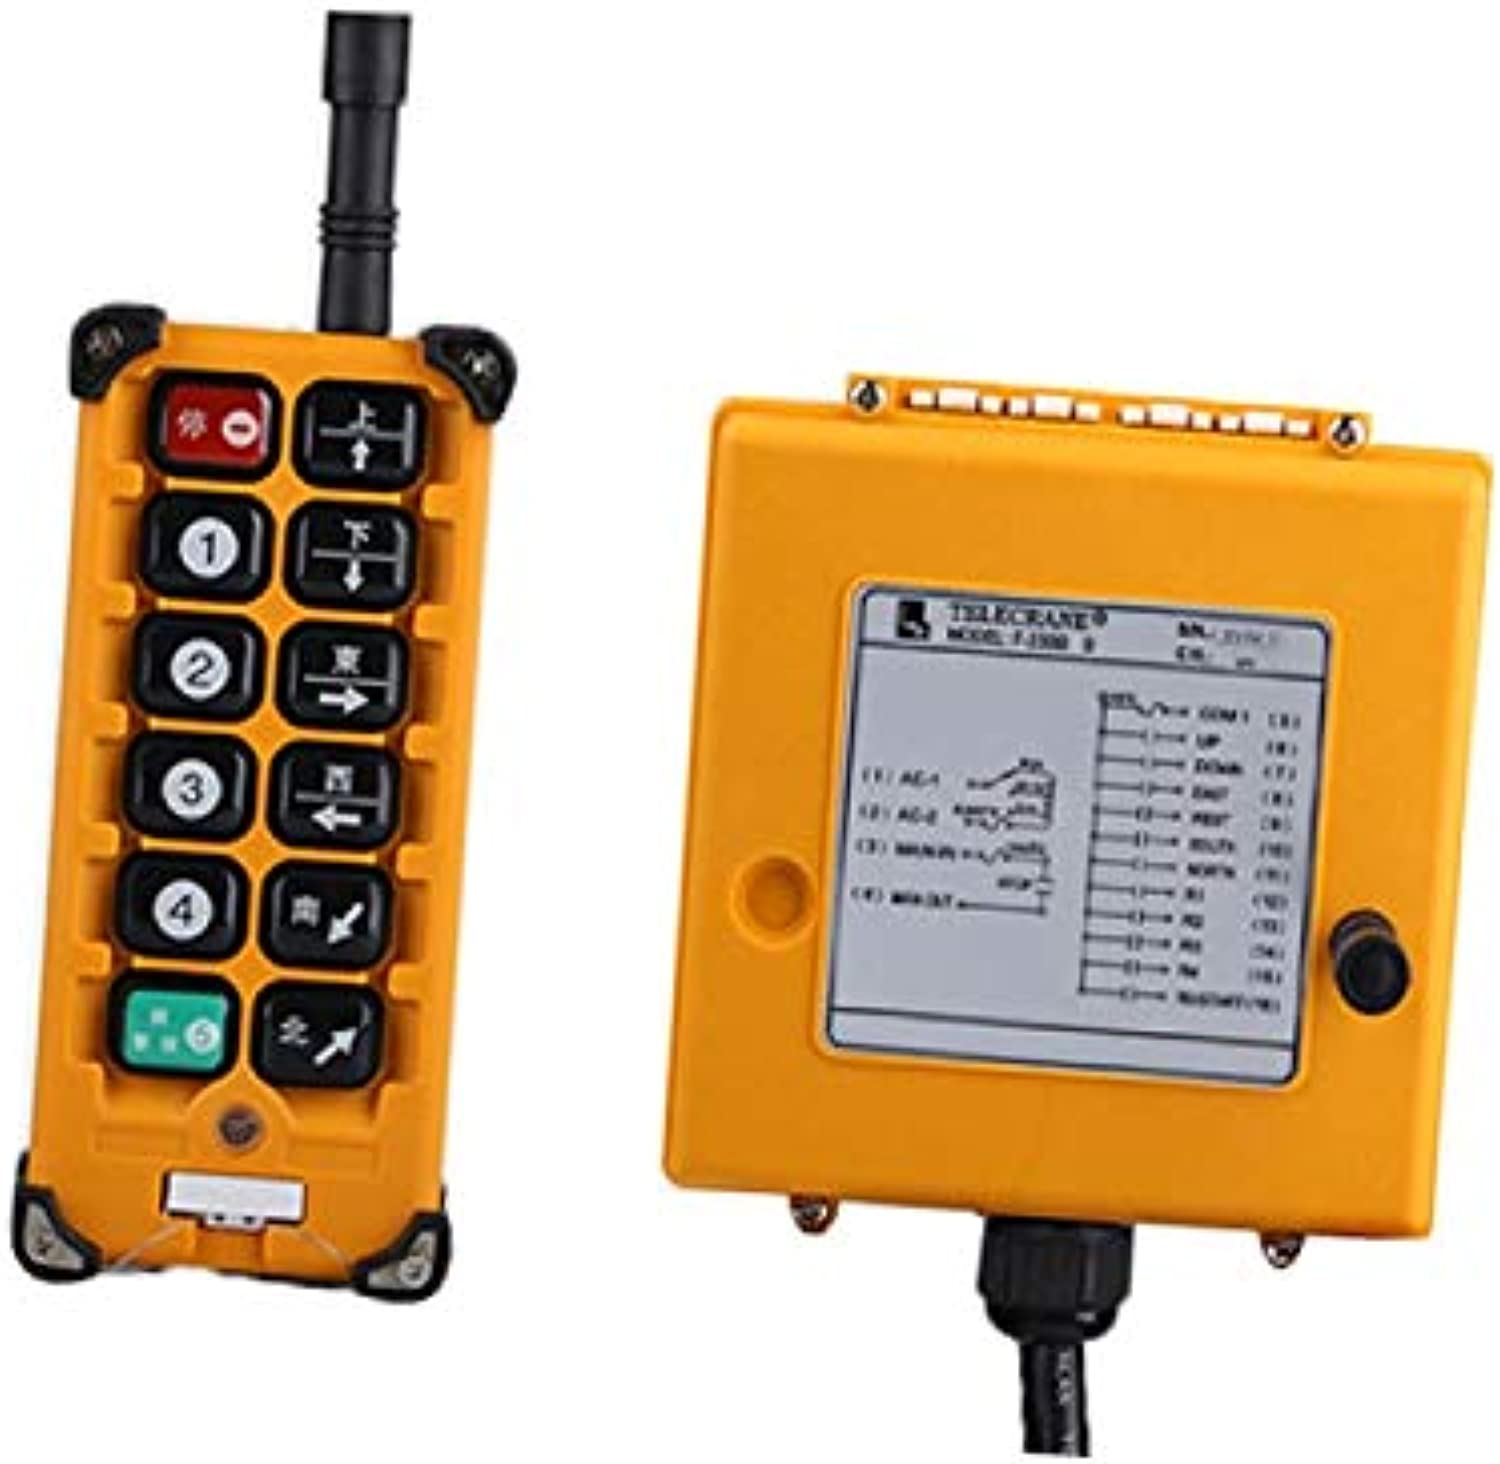 F23BB for Hoist Crane 1 Transmitter and 1 Receiver Industrial Wireless redio Remote Control Switch switches  (Voltage  380V)